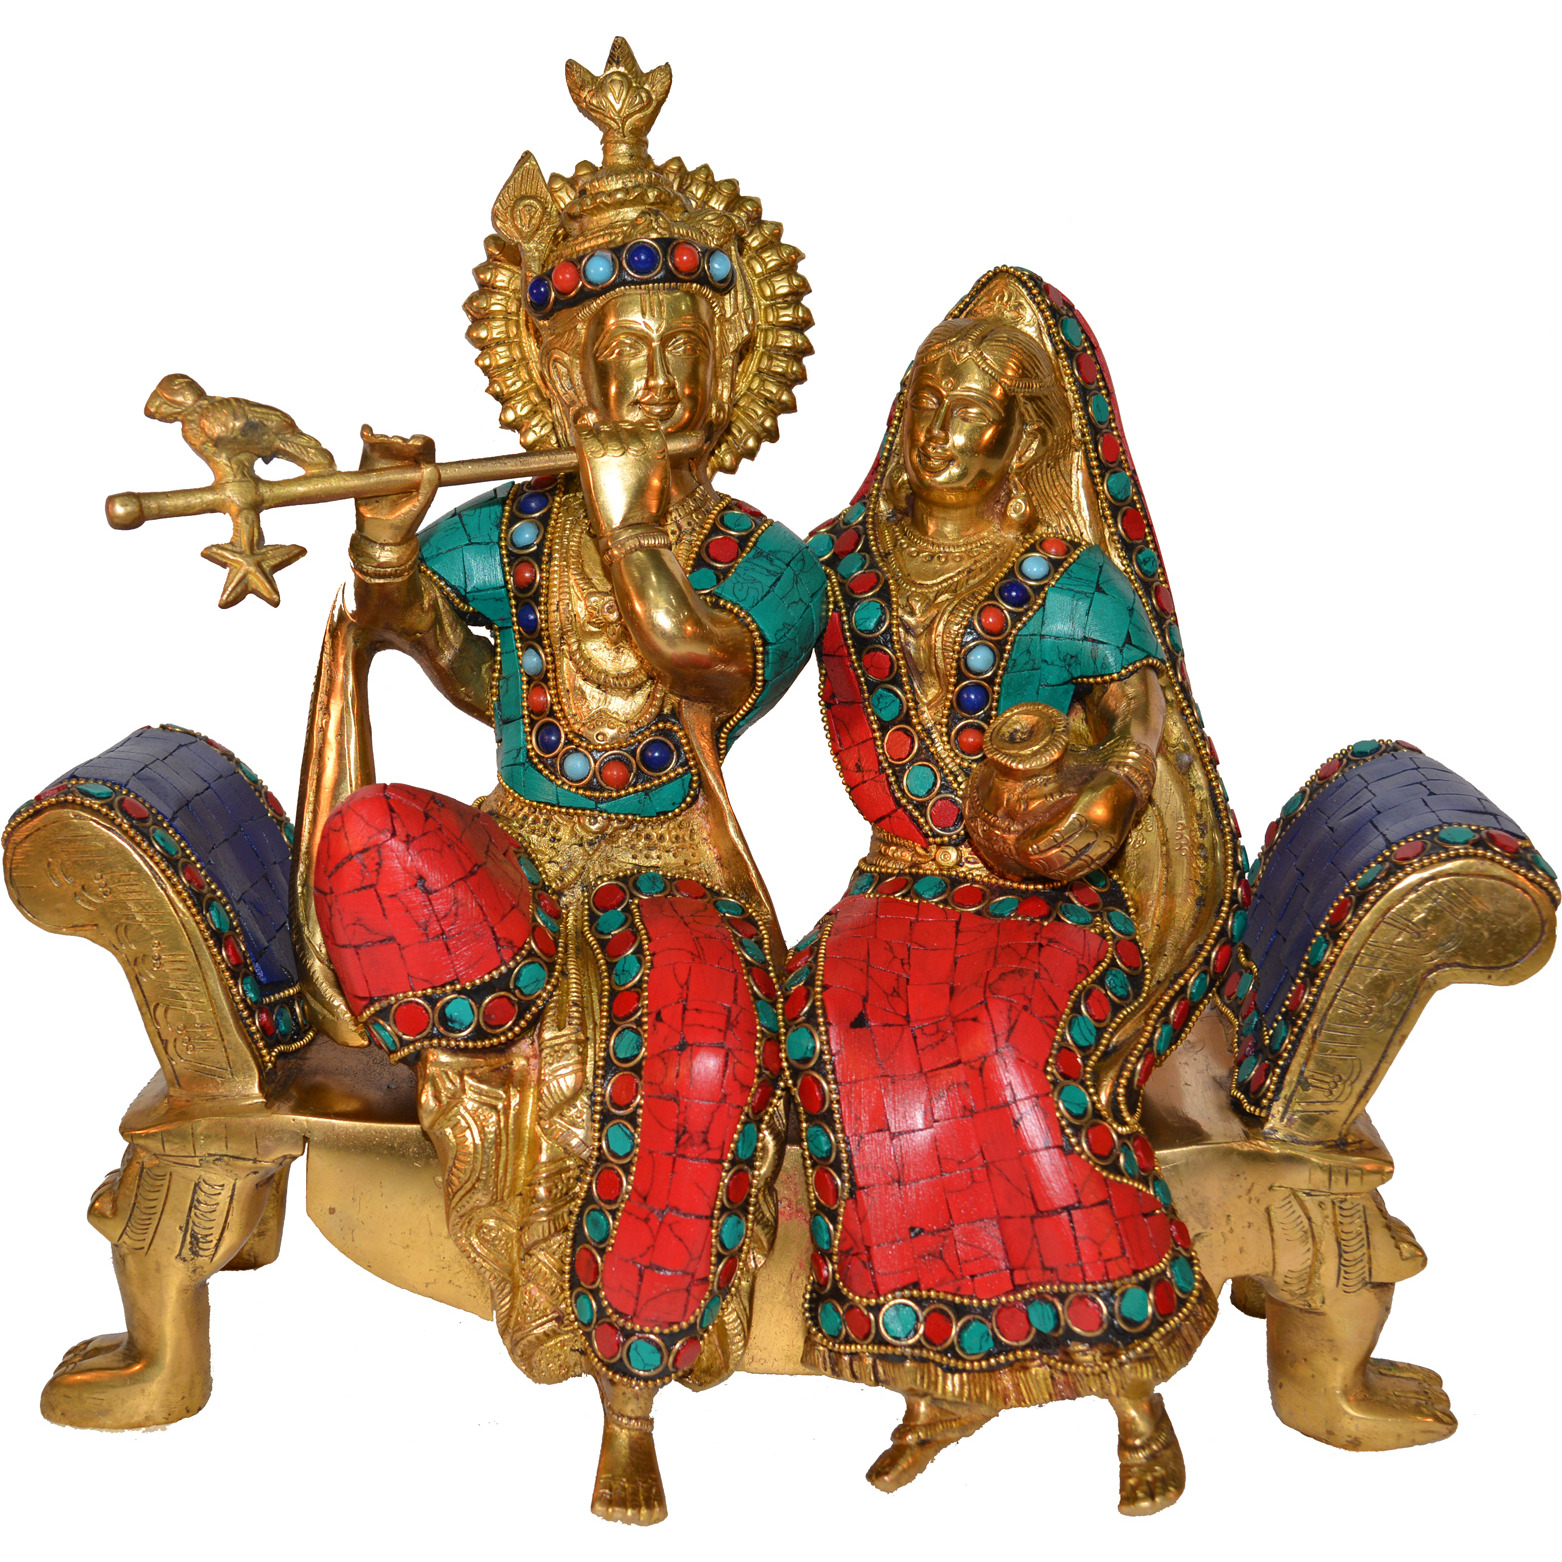 Radha Krishna Sitting On a Sofa Set with Turquoise Work